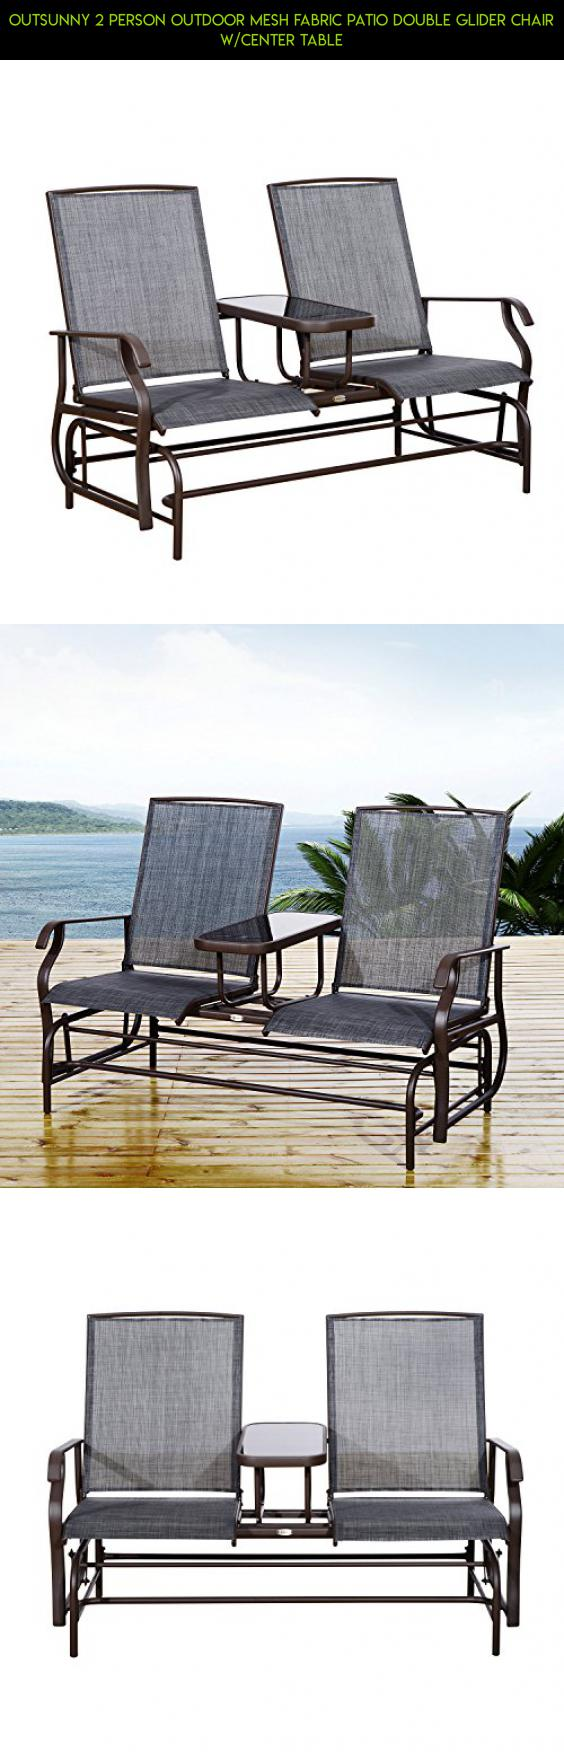 Outsunny 2 Person Outdoor Mesh Fabric Patio Double Glider Chair W/Center  Table #tech